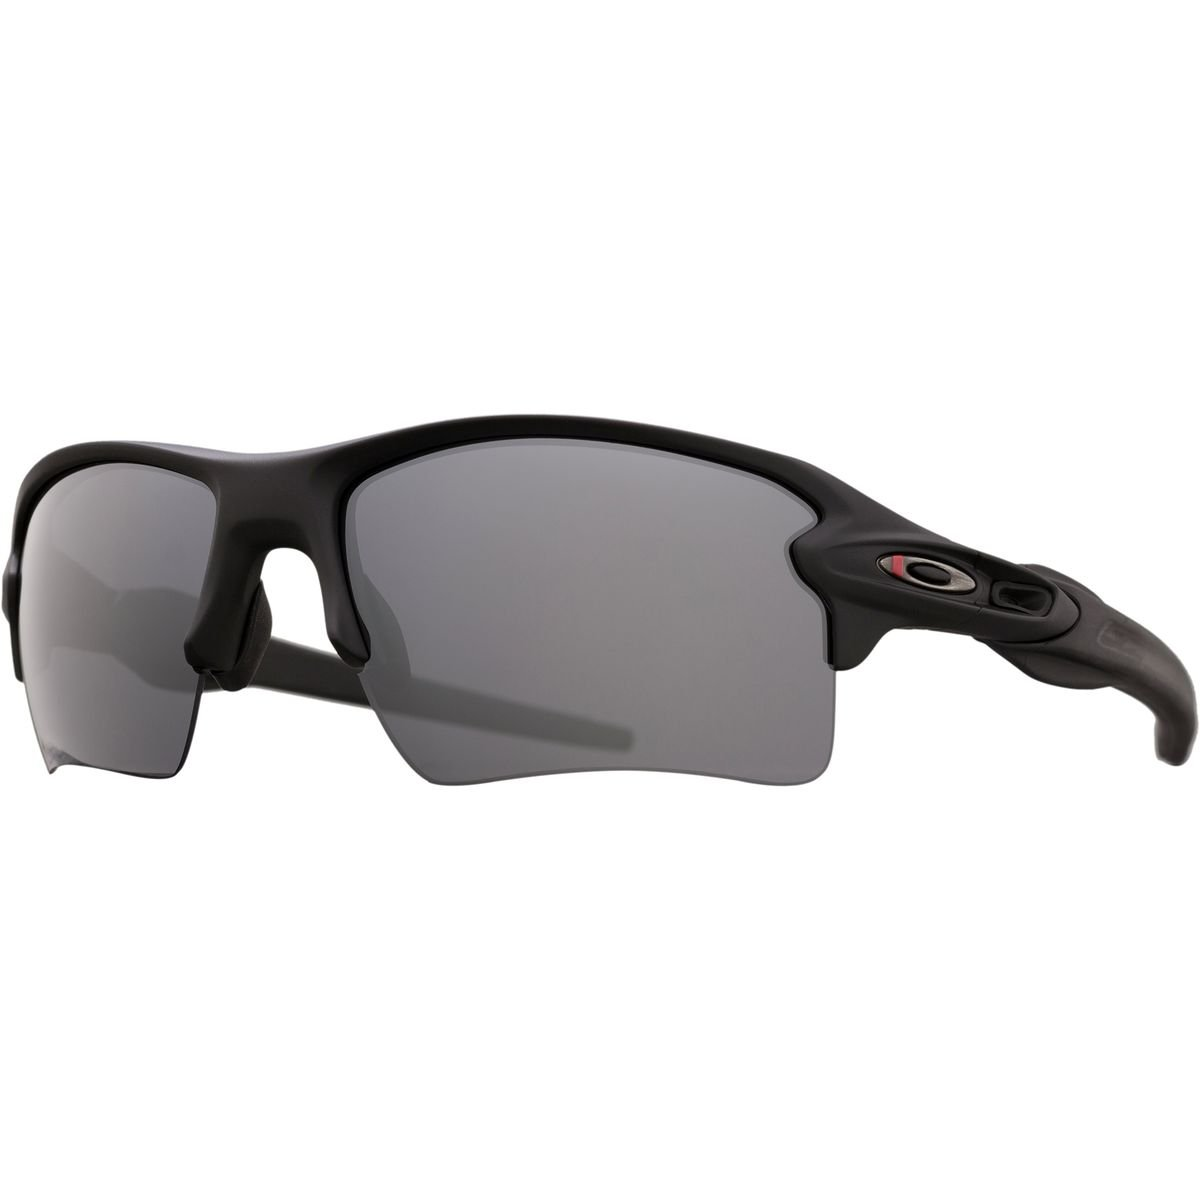 19d85db481 Oakley Flak Jacket 2.0 XL Sunglasses - Men s Satin Black Black Iridium